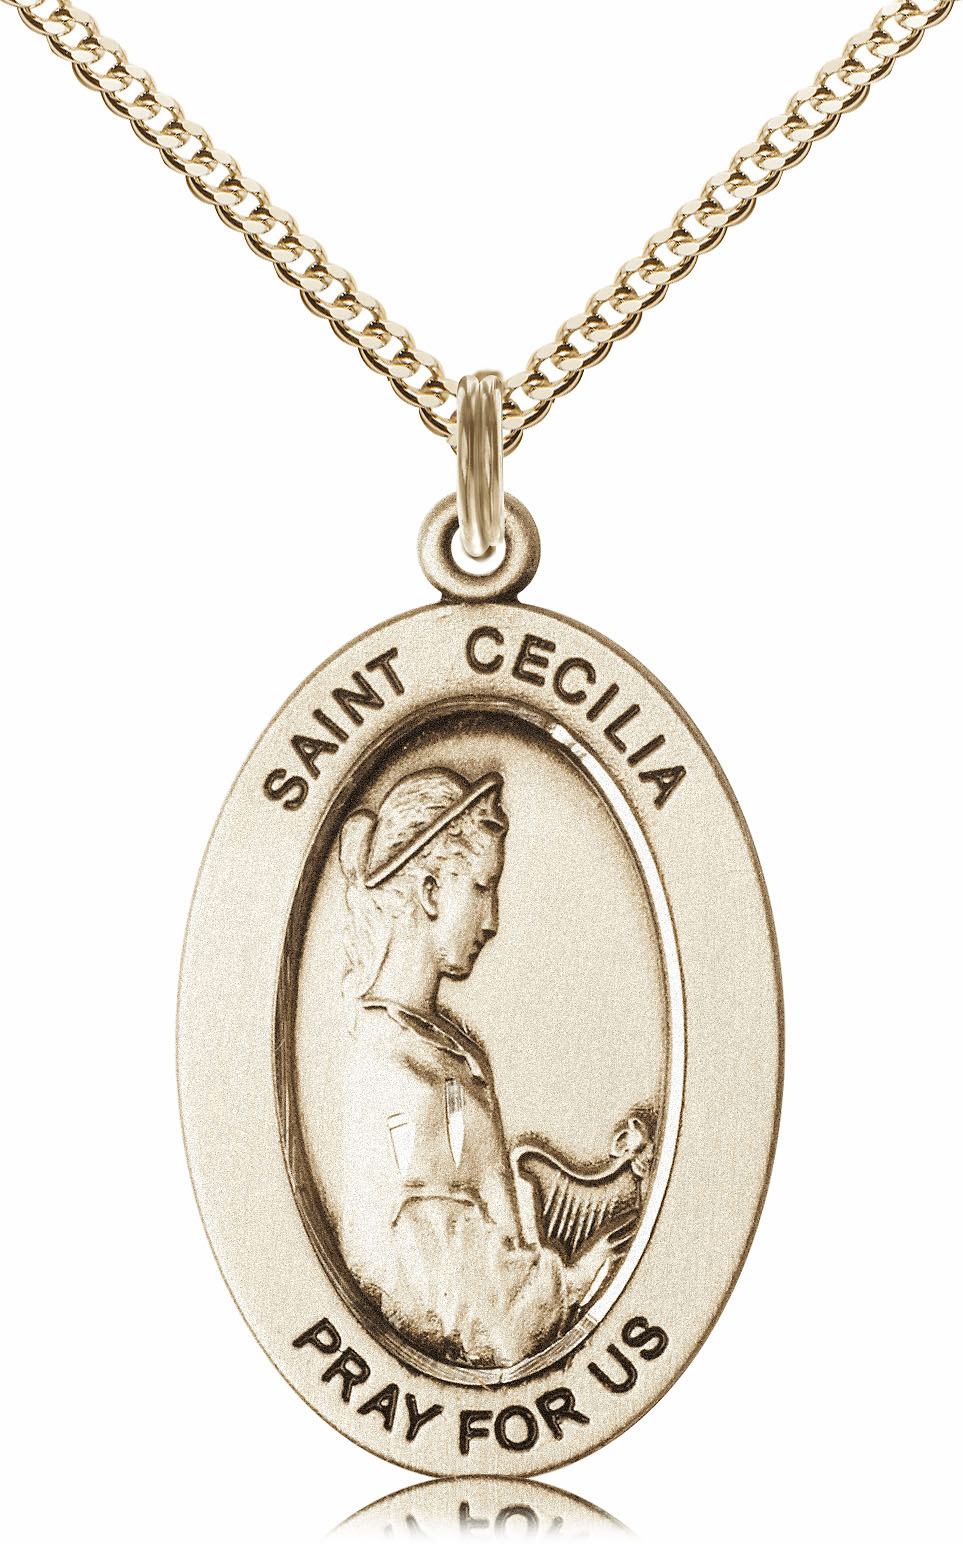 Bliss Mfg Saint Cecilia 14kt Gold-filled Medal Necklace w/Chain